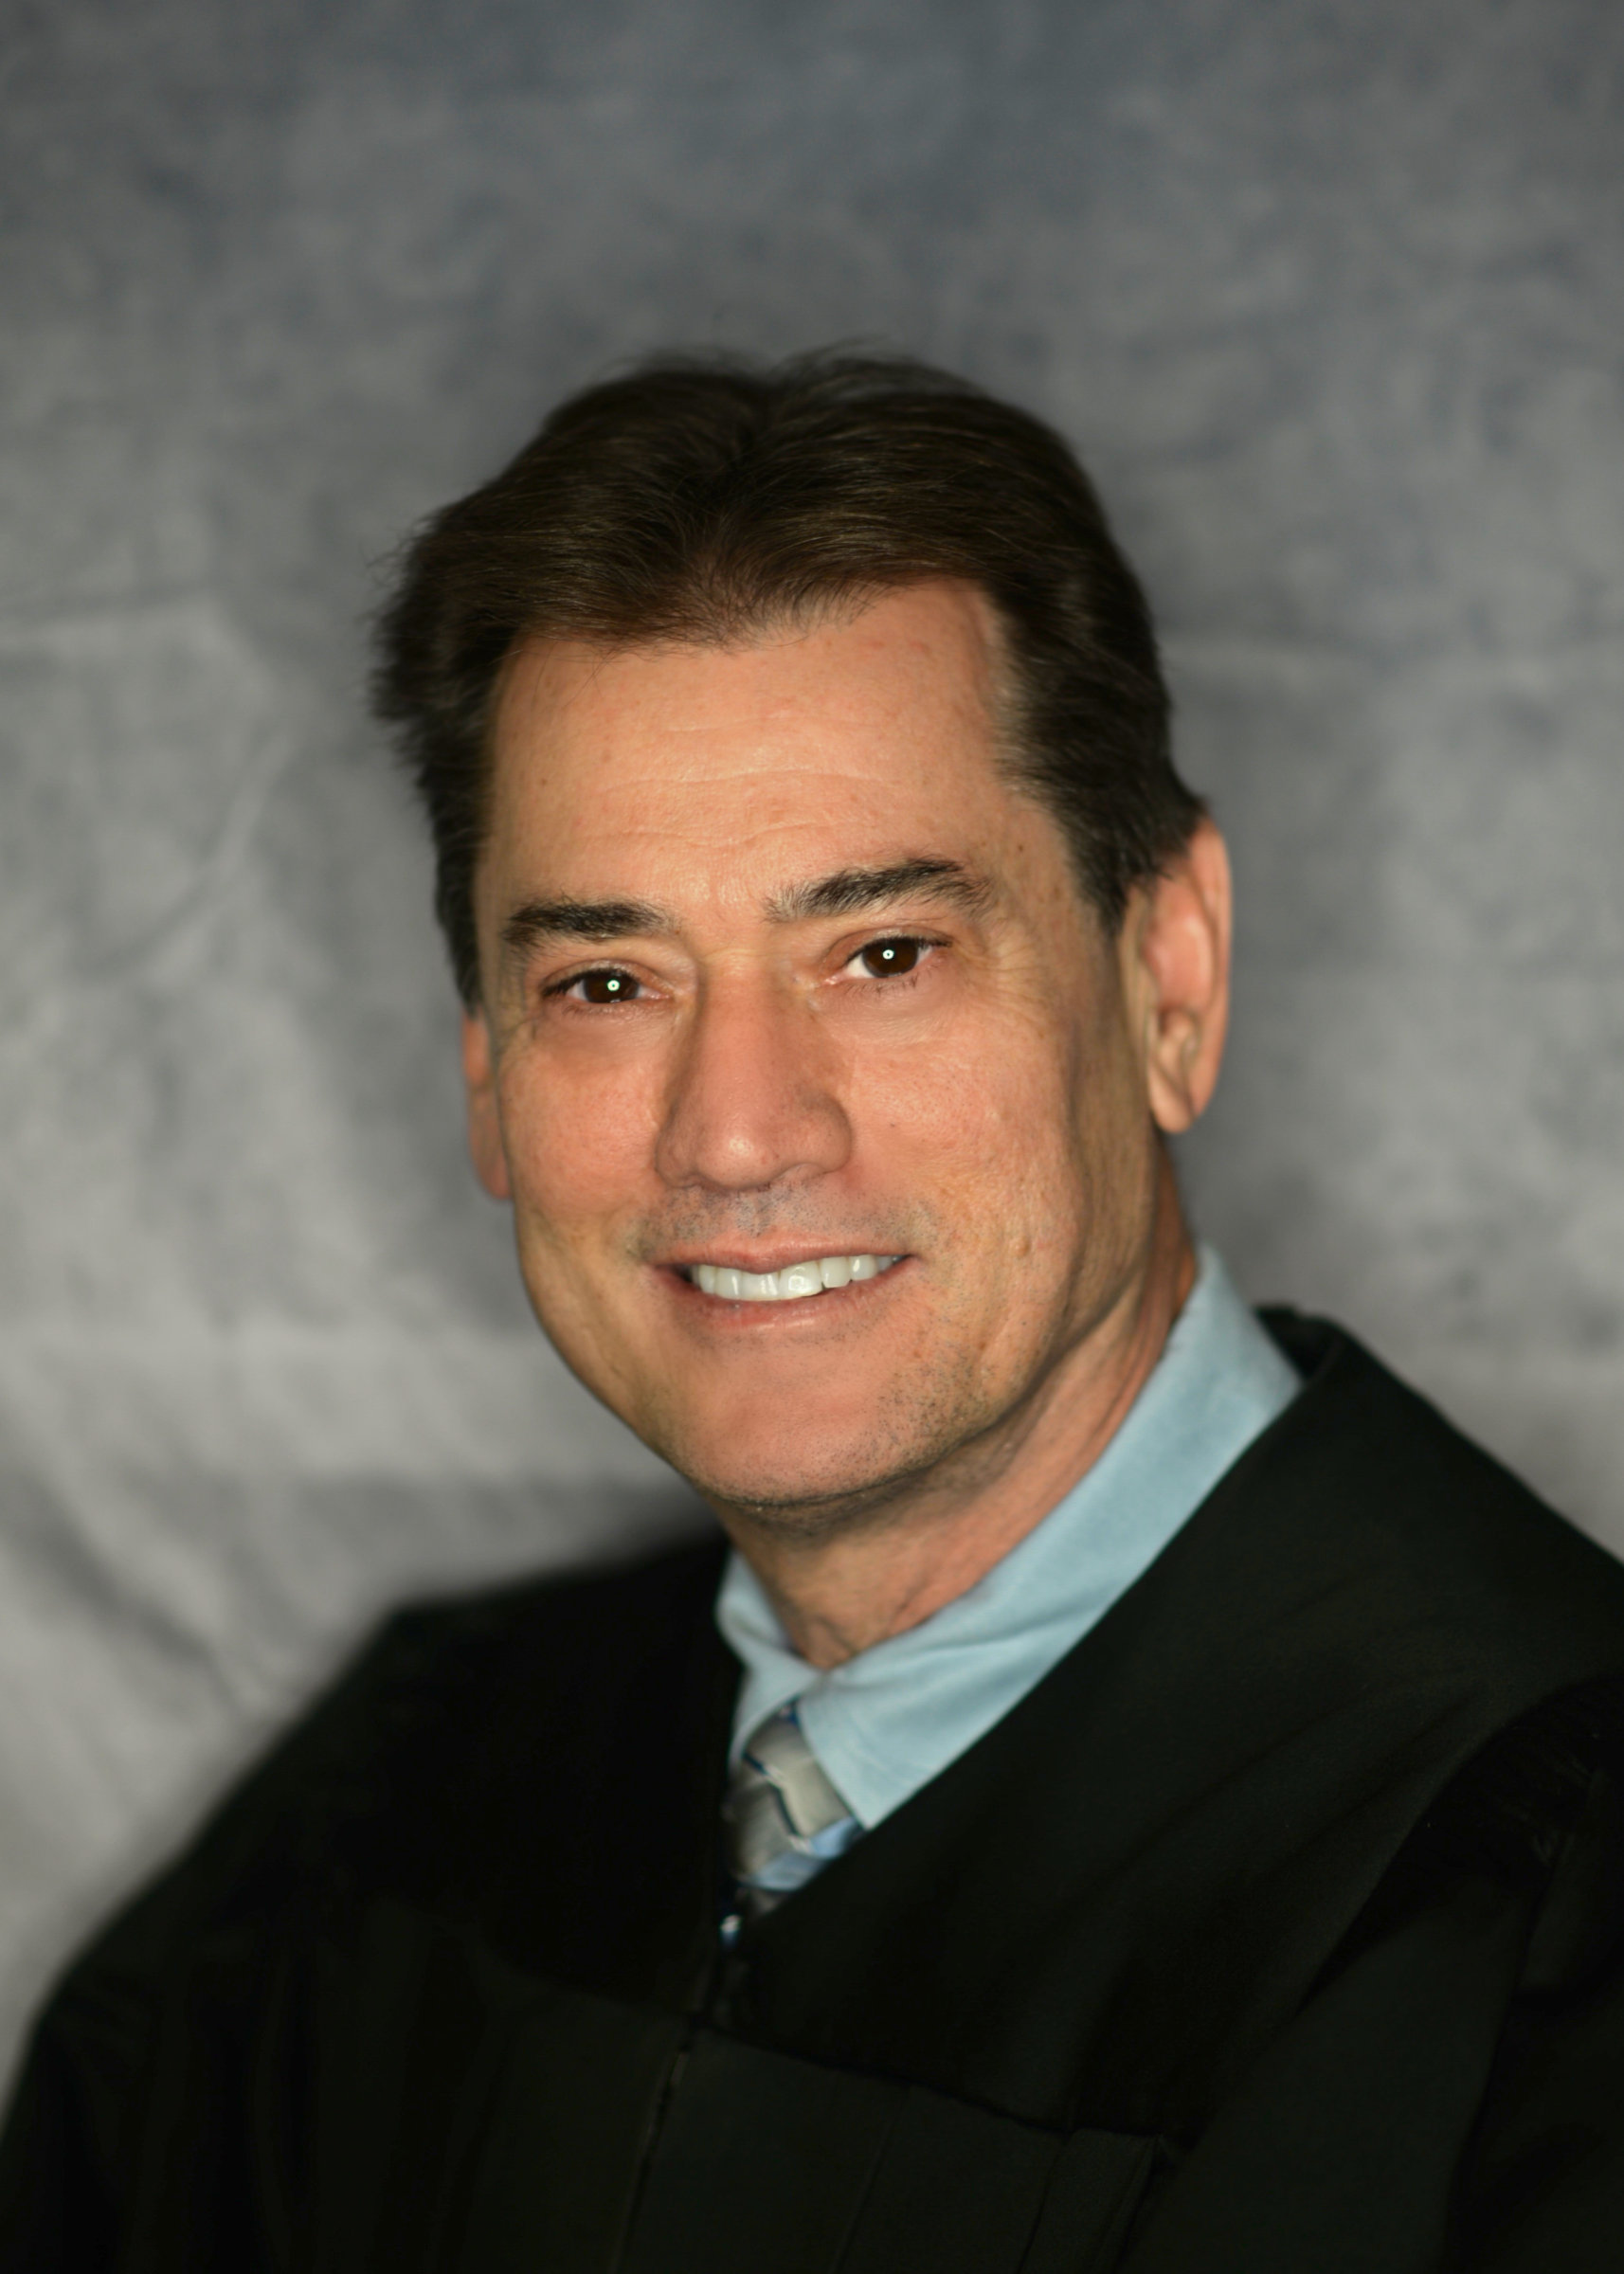 Judge Moseley